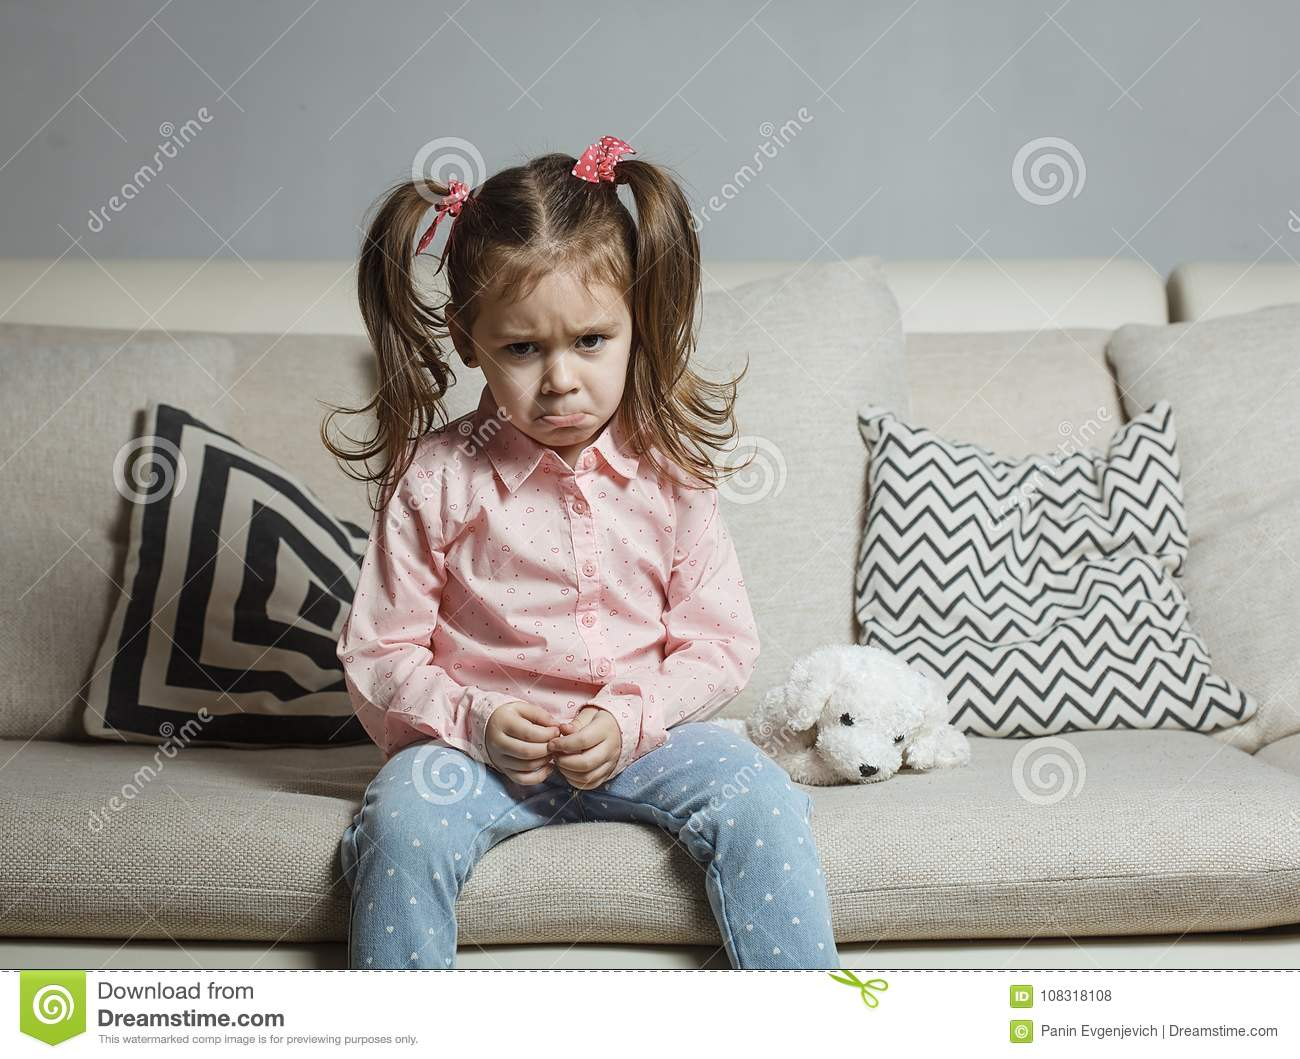 Sad or angry little girl, victim, holding toy dog.